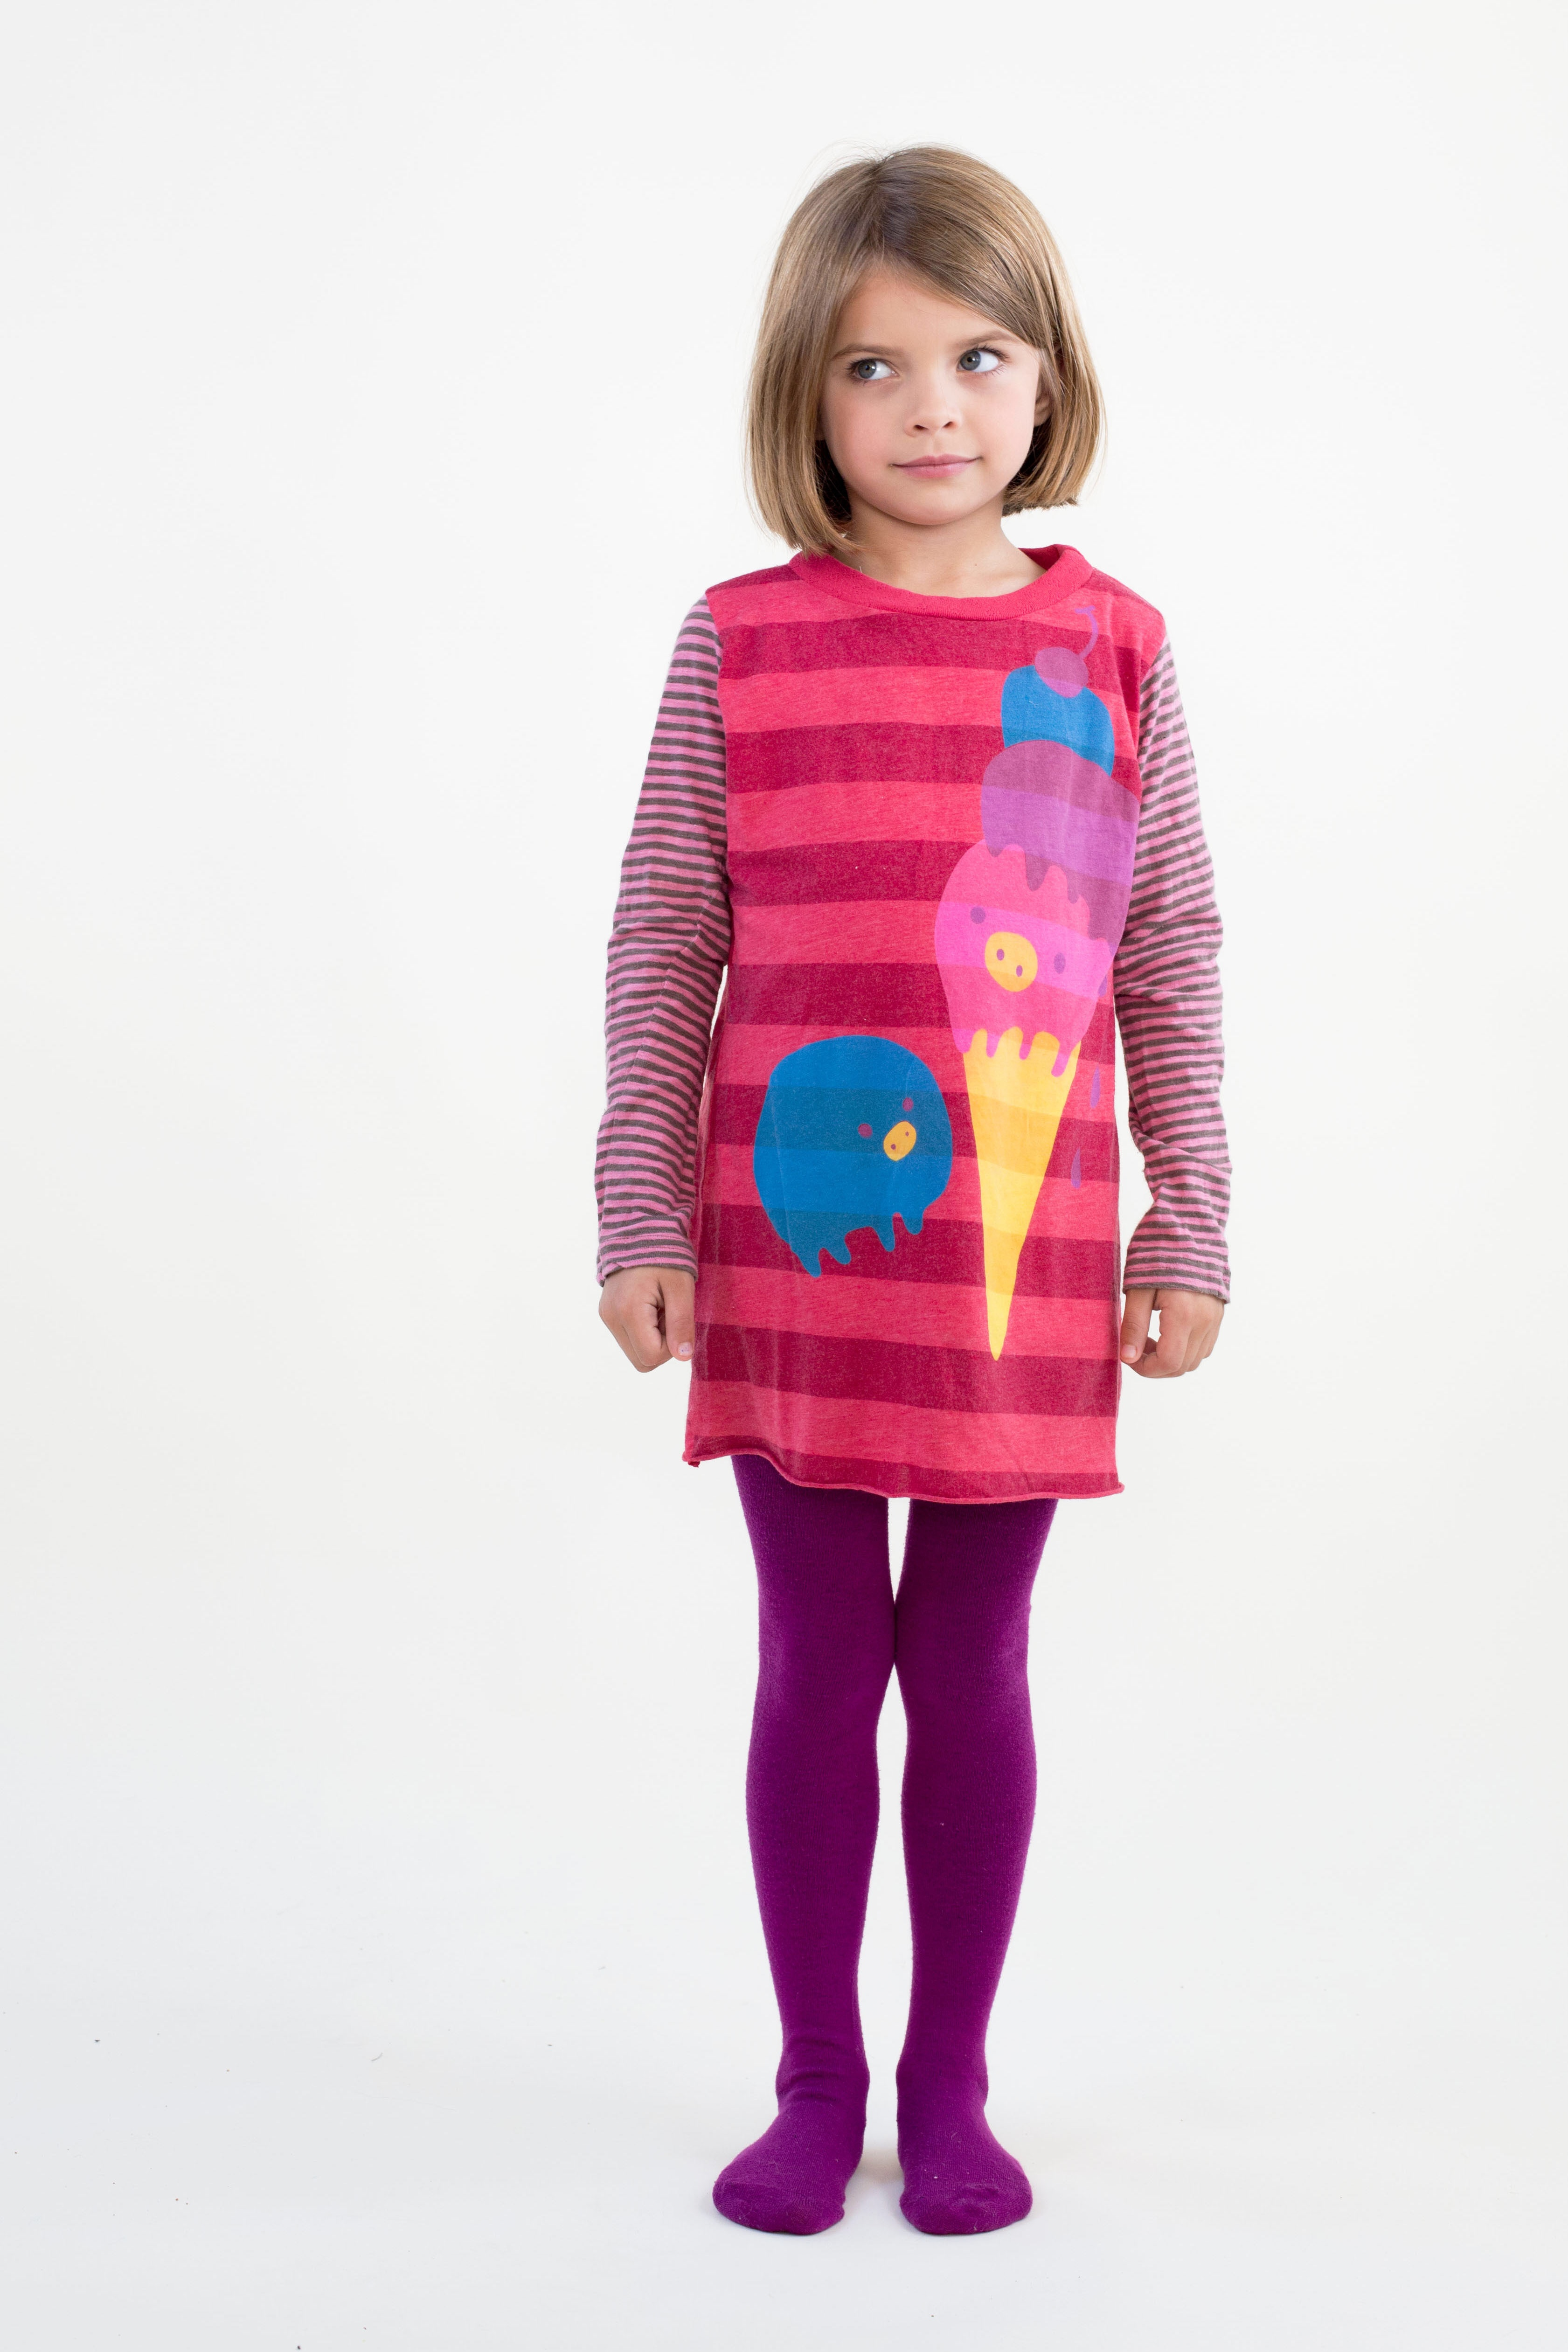 refashioning styles for kids